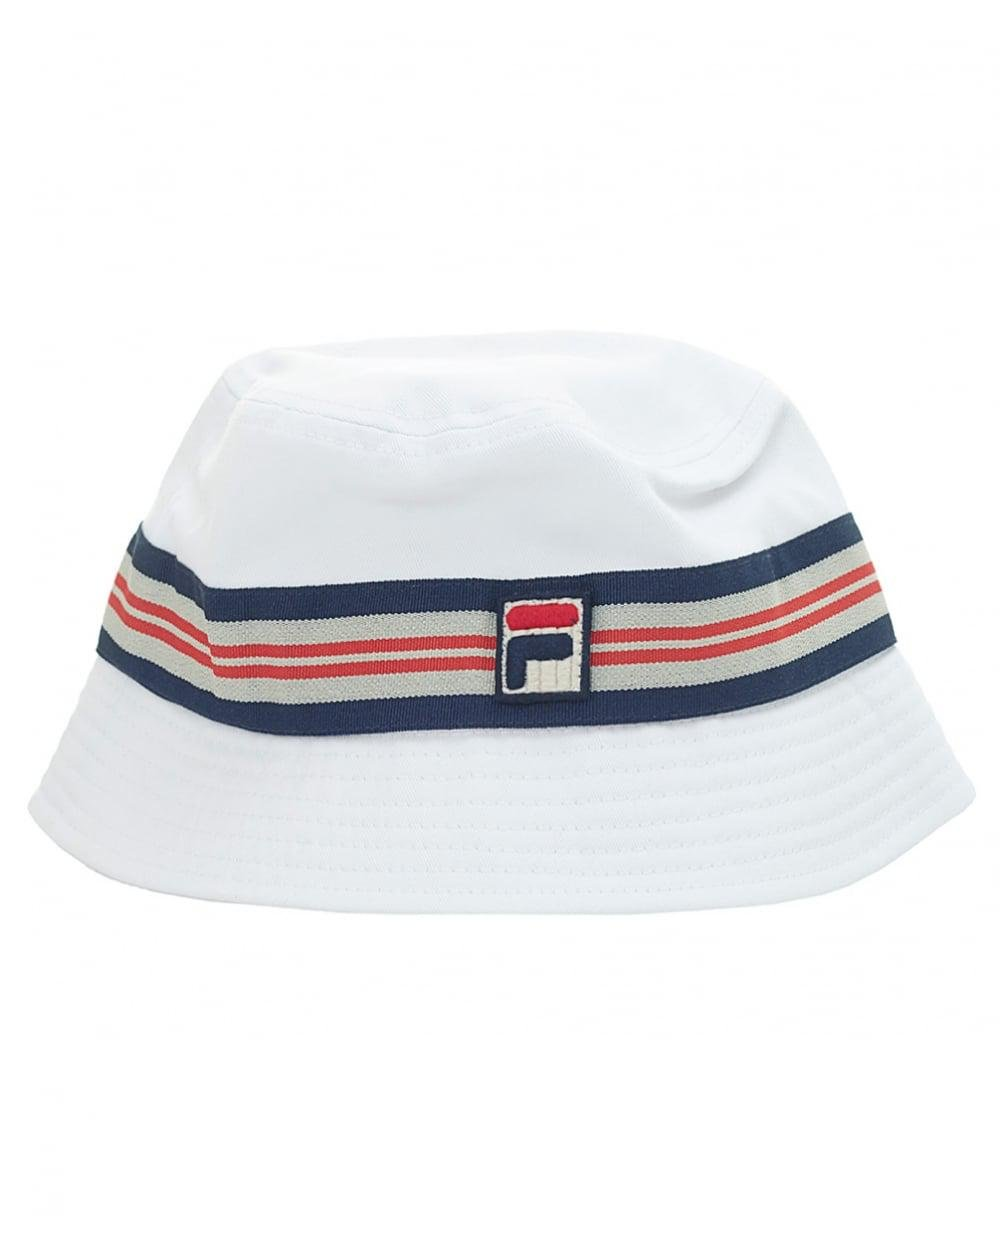 ... outlet store 455c4 704b6 Lyst - Fila Vintage Bucket Hat in White for  Men ... 466fc3c9da64